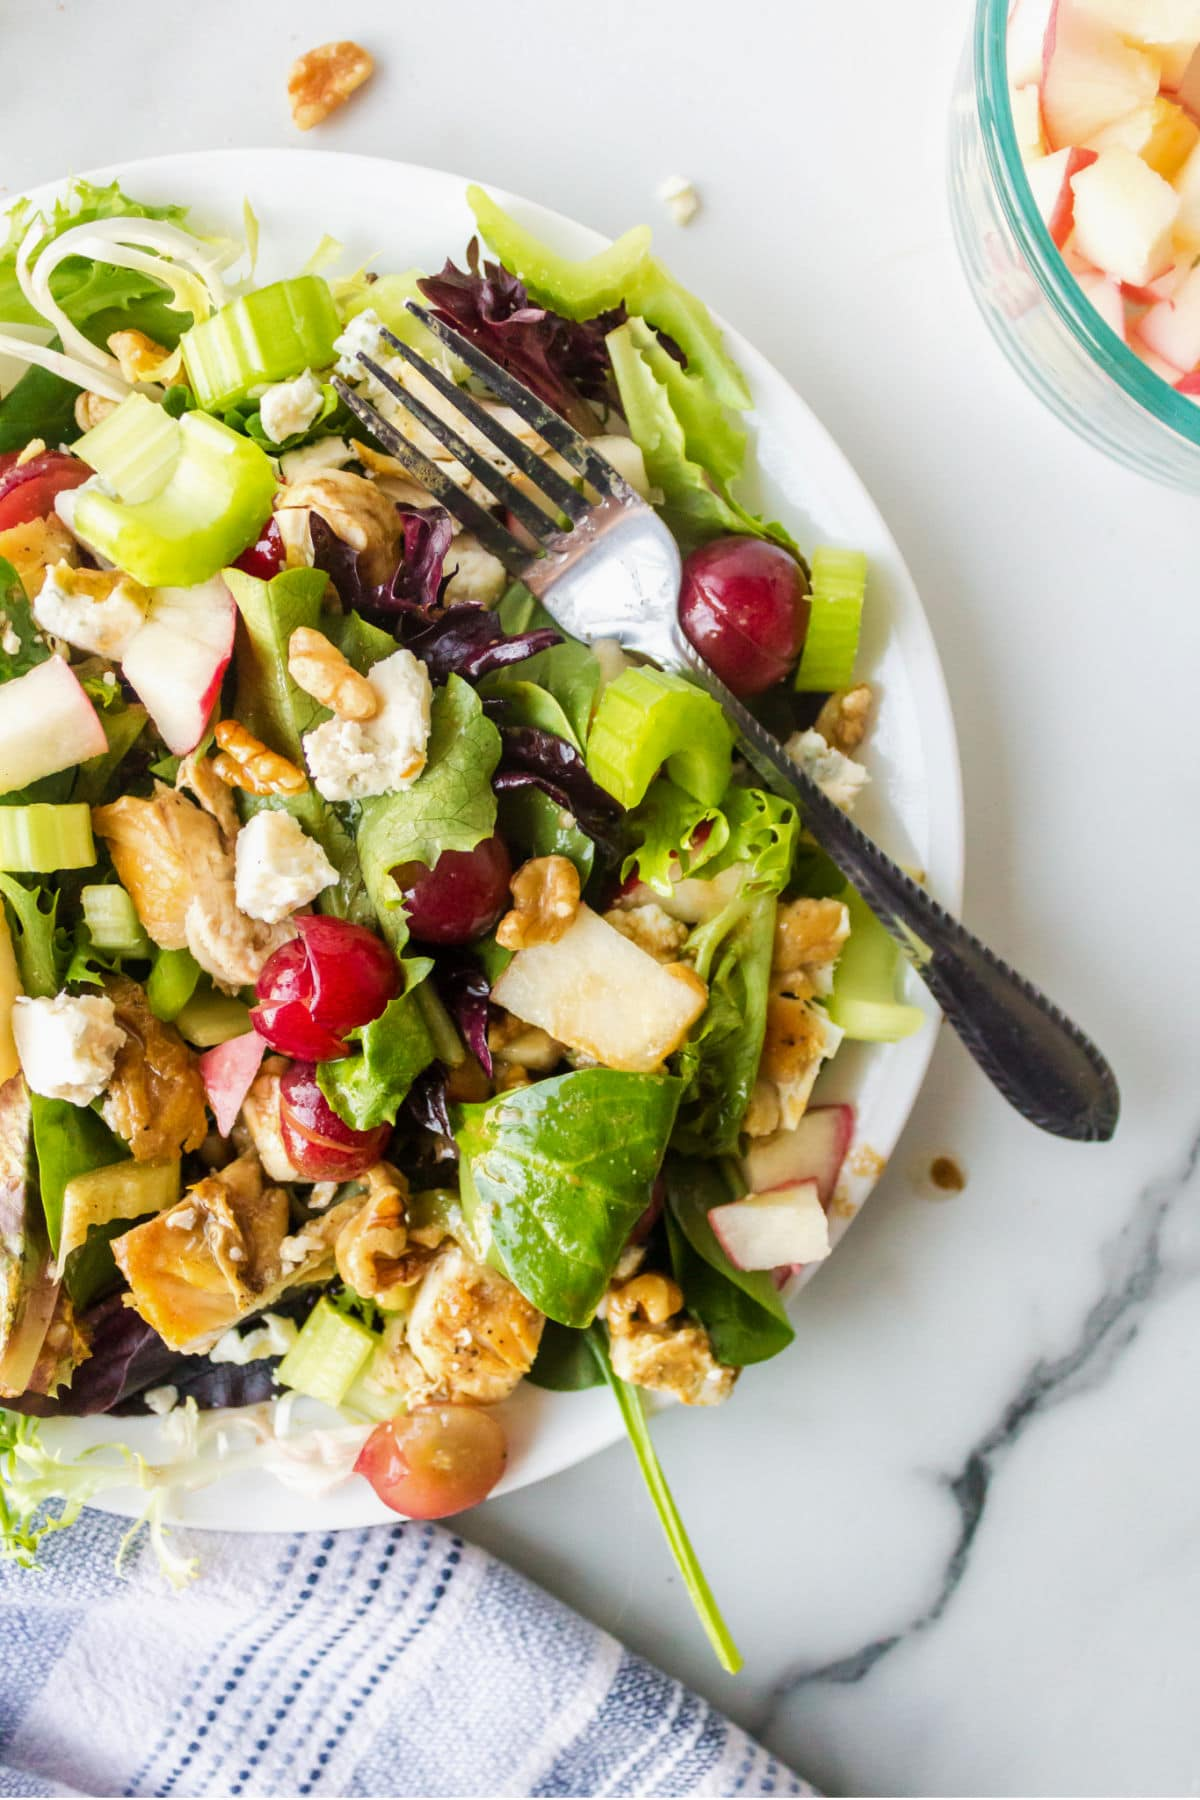 White plate with waldorf salad on a marble background.